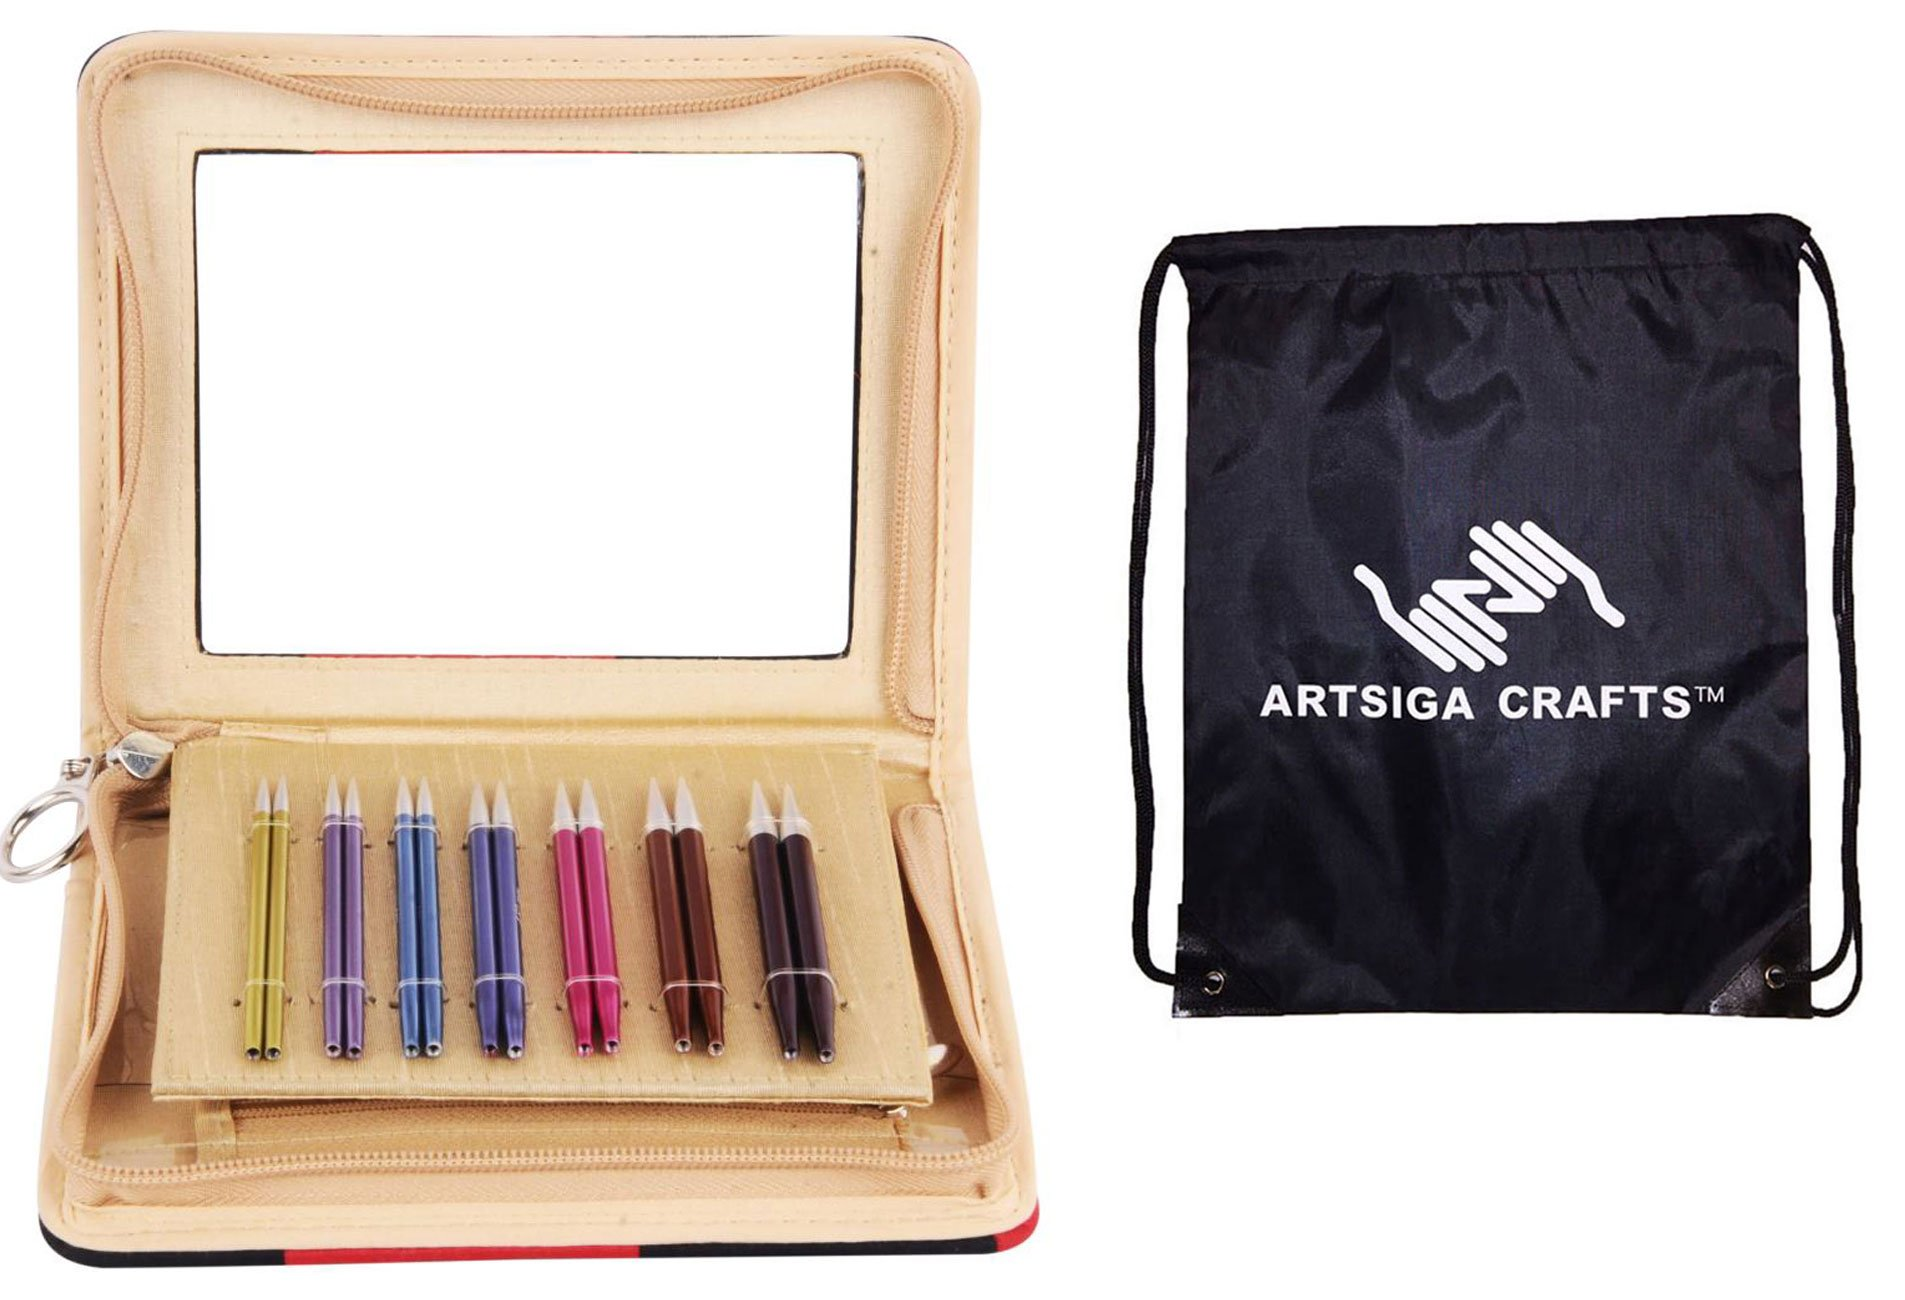 Knitter's Pride Knitting Needles Zing Interchangeable 3.5 inch Special Needle Set Bundle with 1 Artsiga Crafts Bag 140302